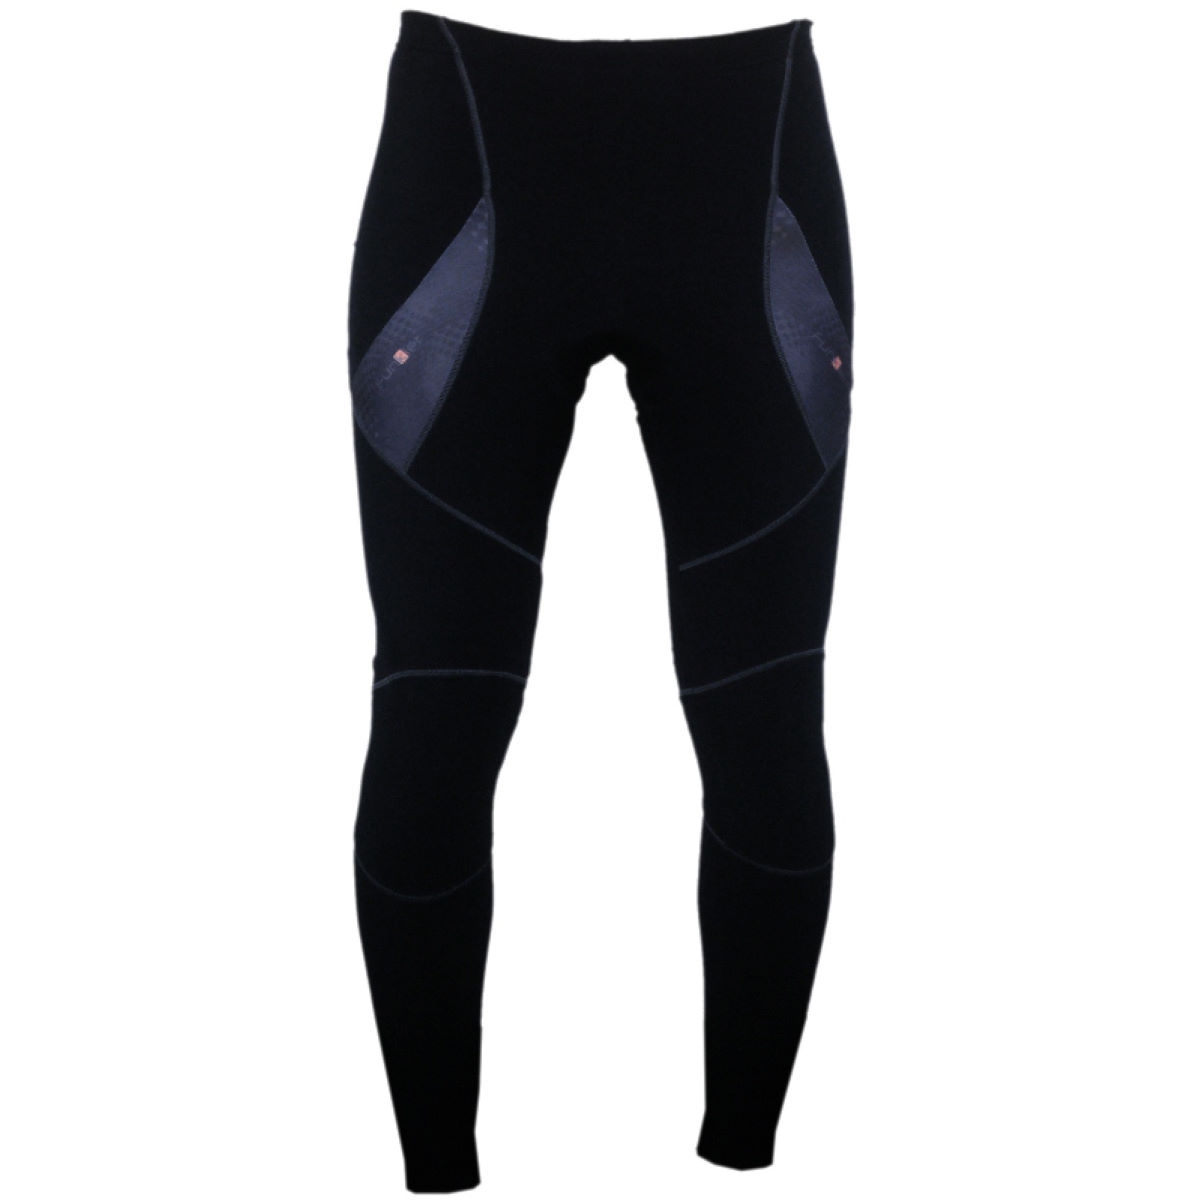 Cuissard long Funkier Thermal - S Noir Cuissards longs de vélo